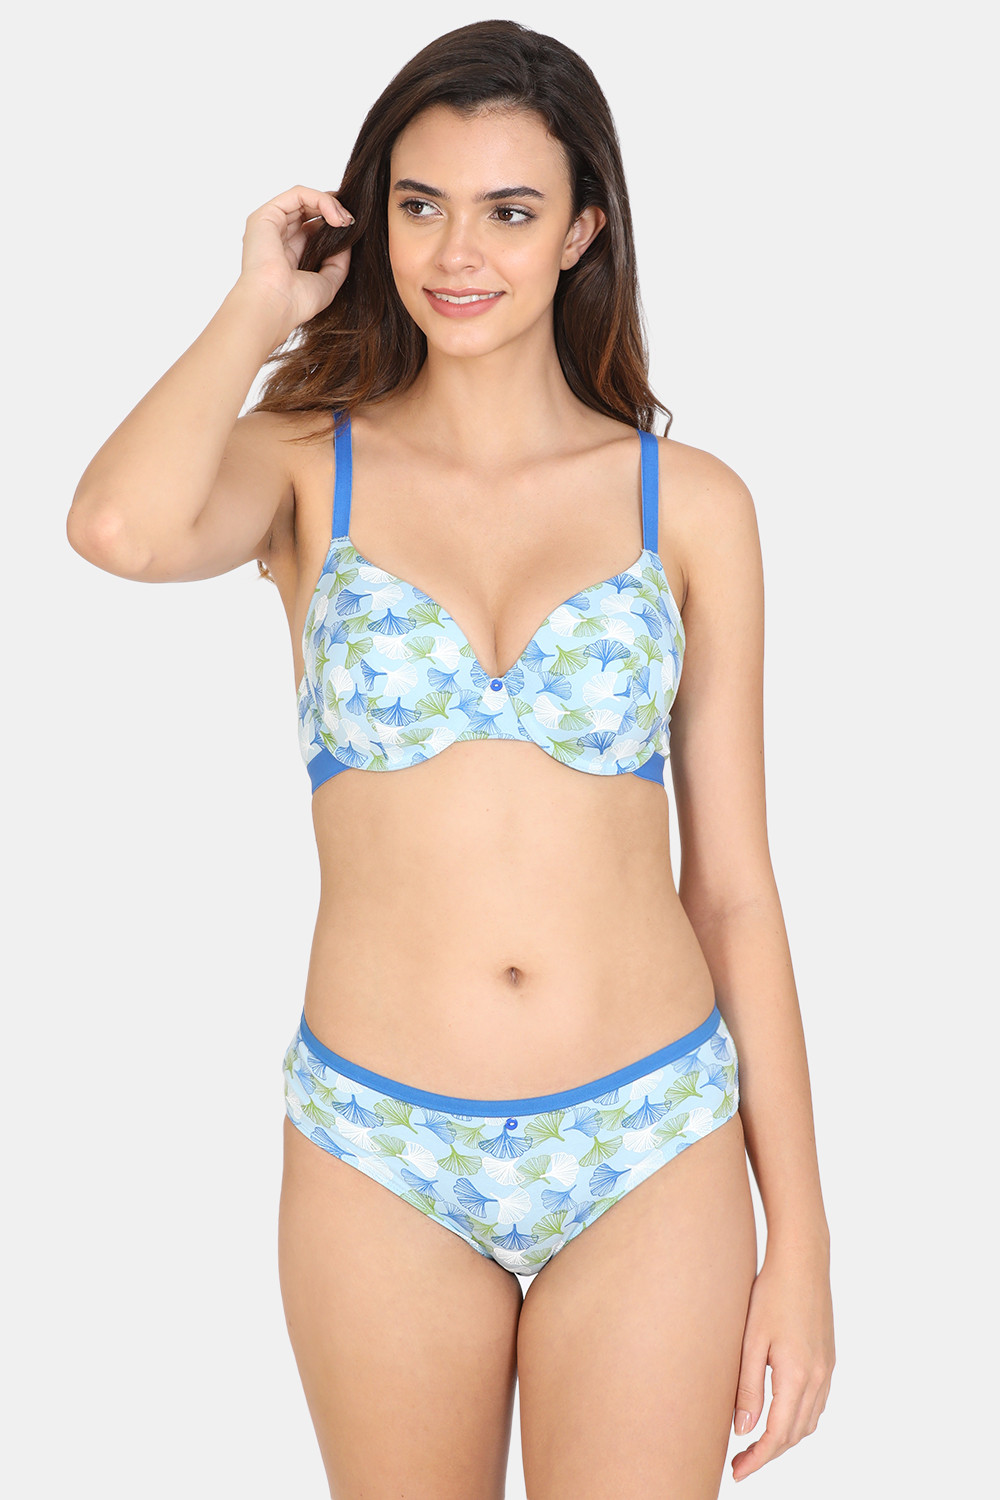 Buy Zivame Asymmetric Print Padded Wired 3/4th Coverage T-Shirt Bra With Low Rise Panty - Blue